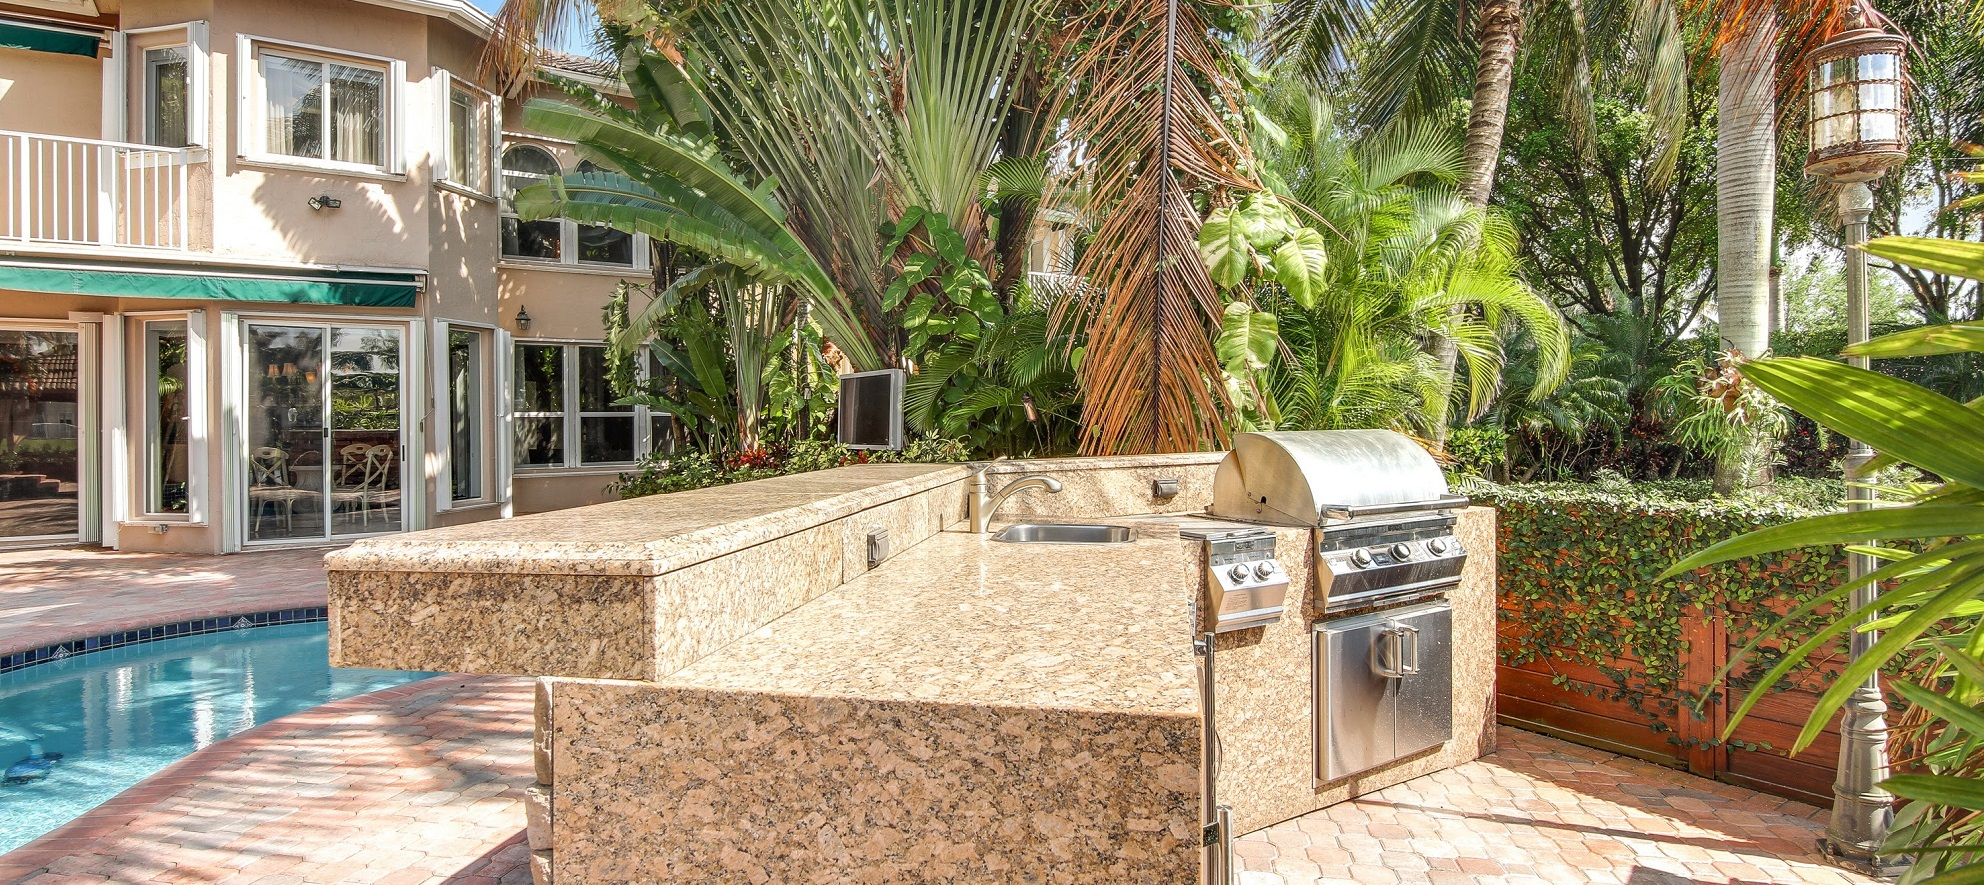 Luxury listing: meticulous details and stunning upgrades